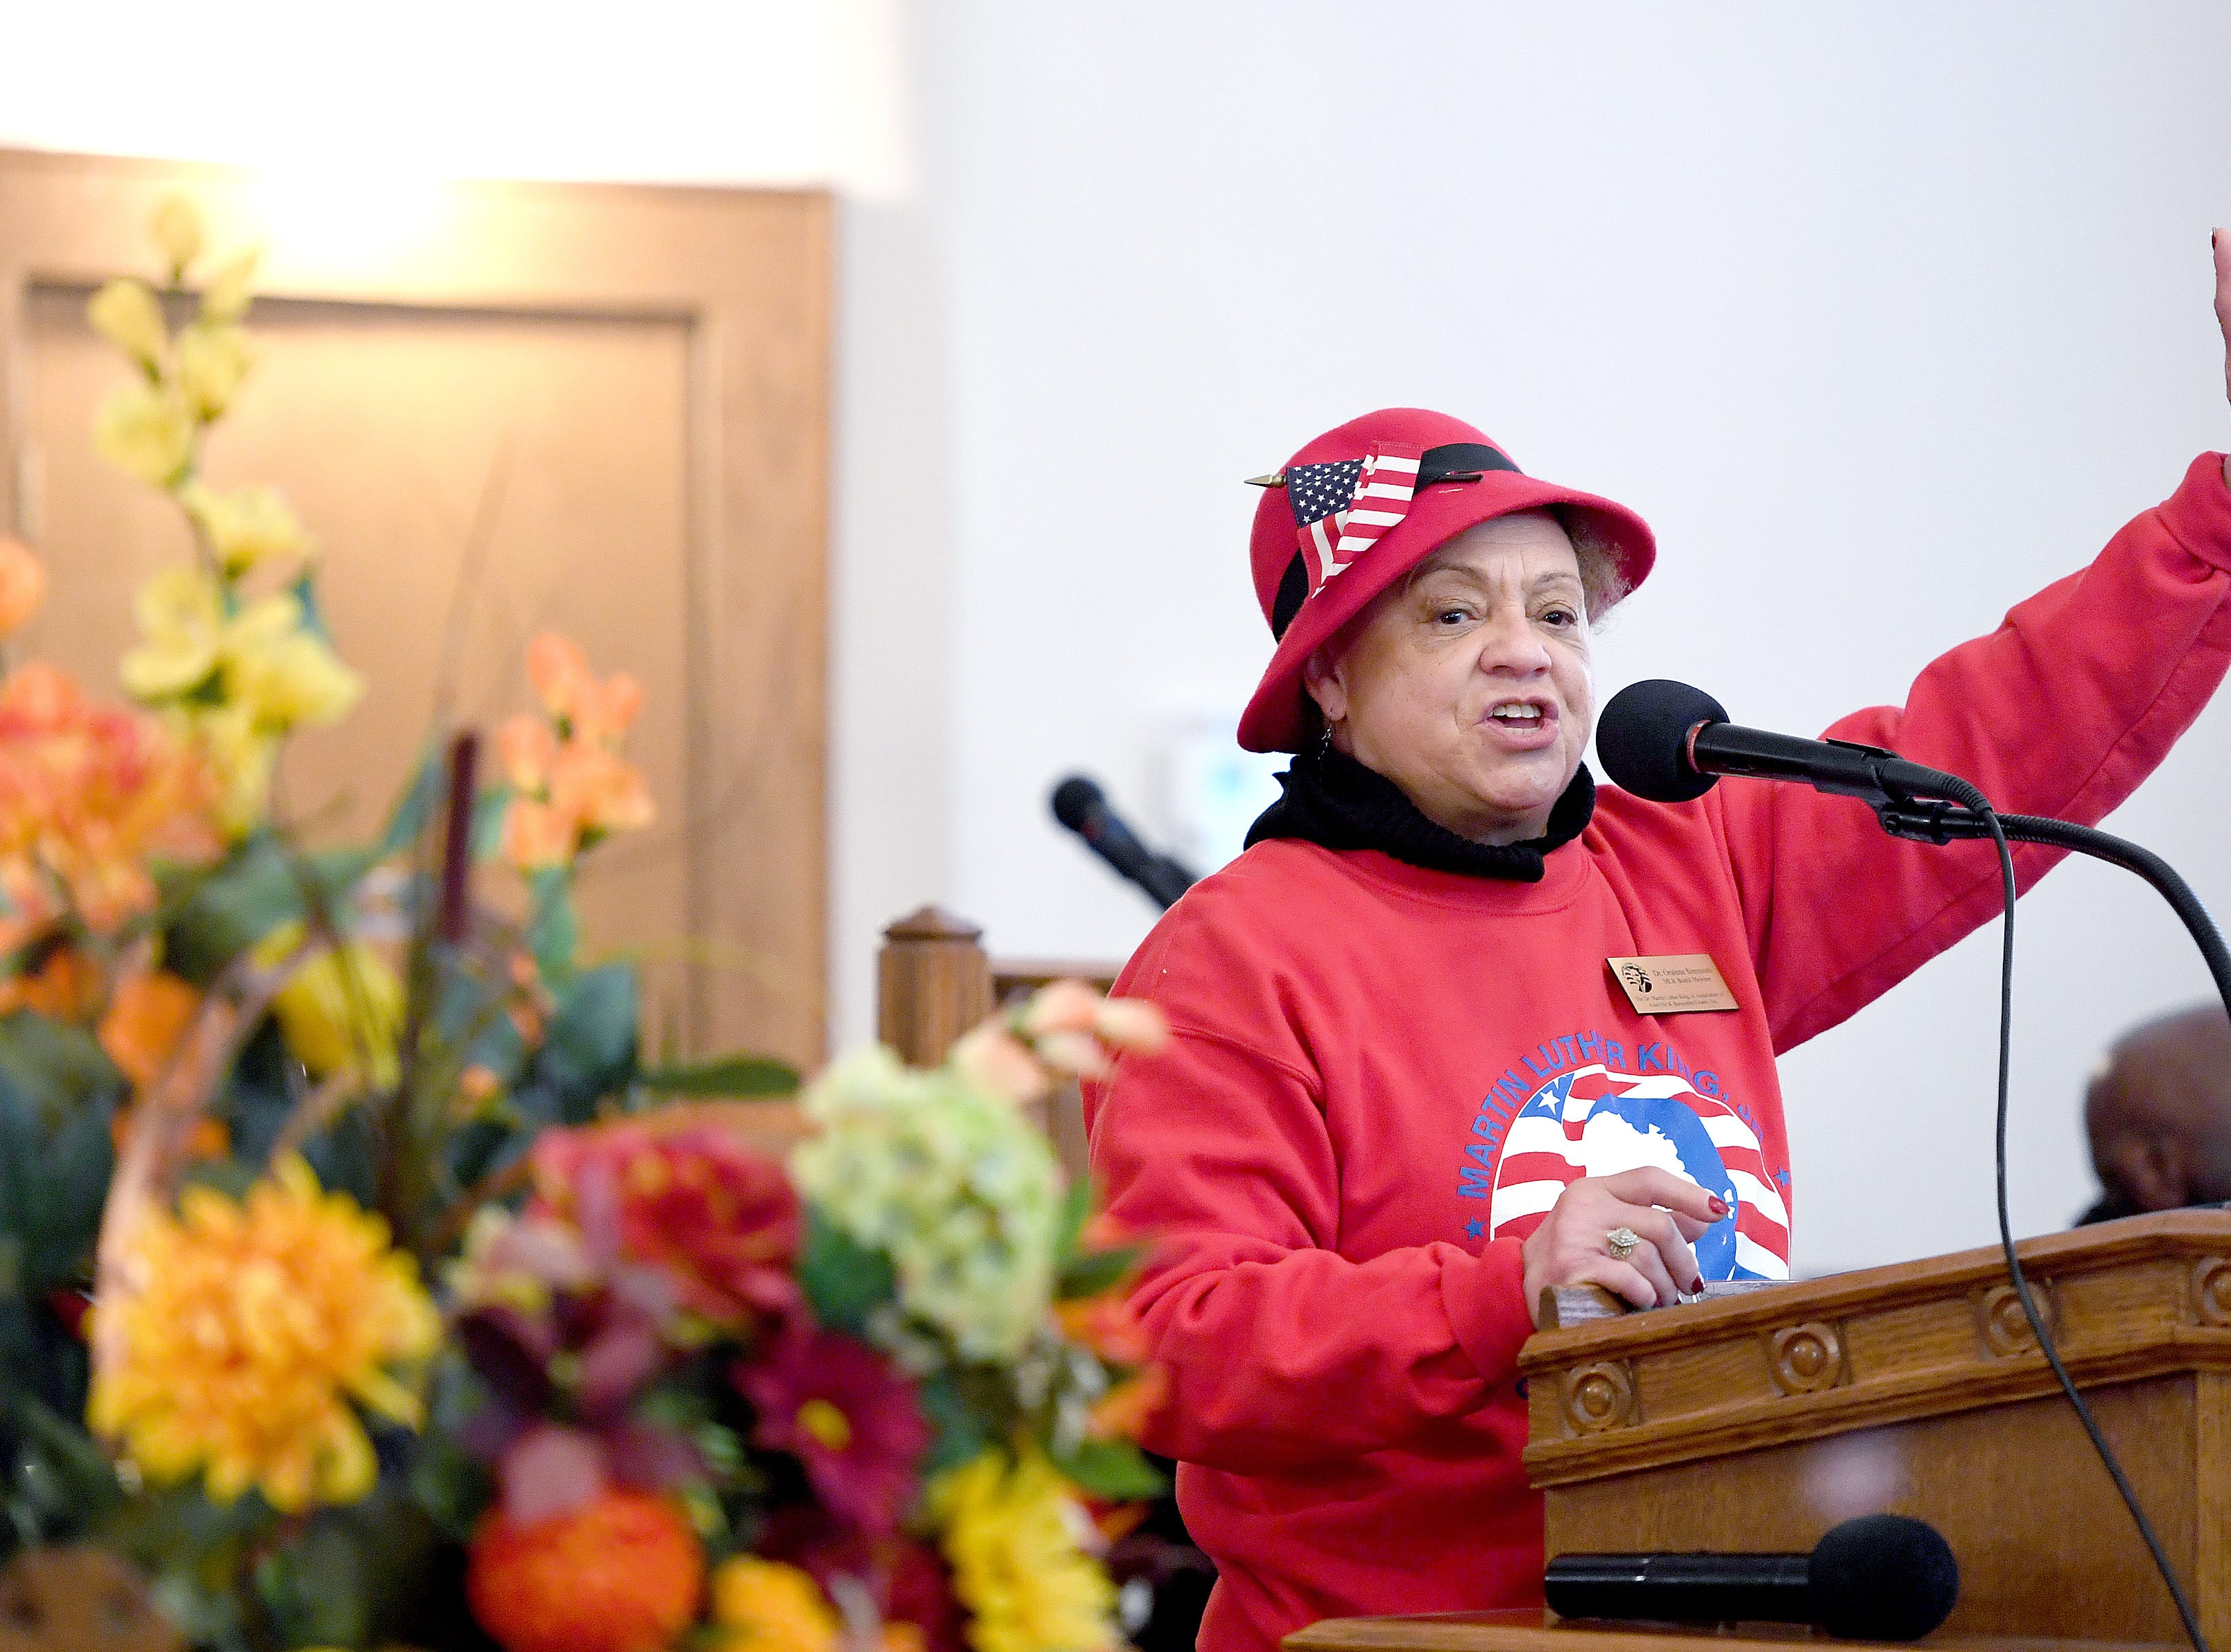 Dr. Oralene Simmons, MLK Association board president speaks to the crowd at St. James AME Church during the Dr. Martin Luther King, Jr. Peace March and Rally on Jan. 21, 2019.